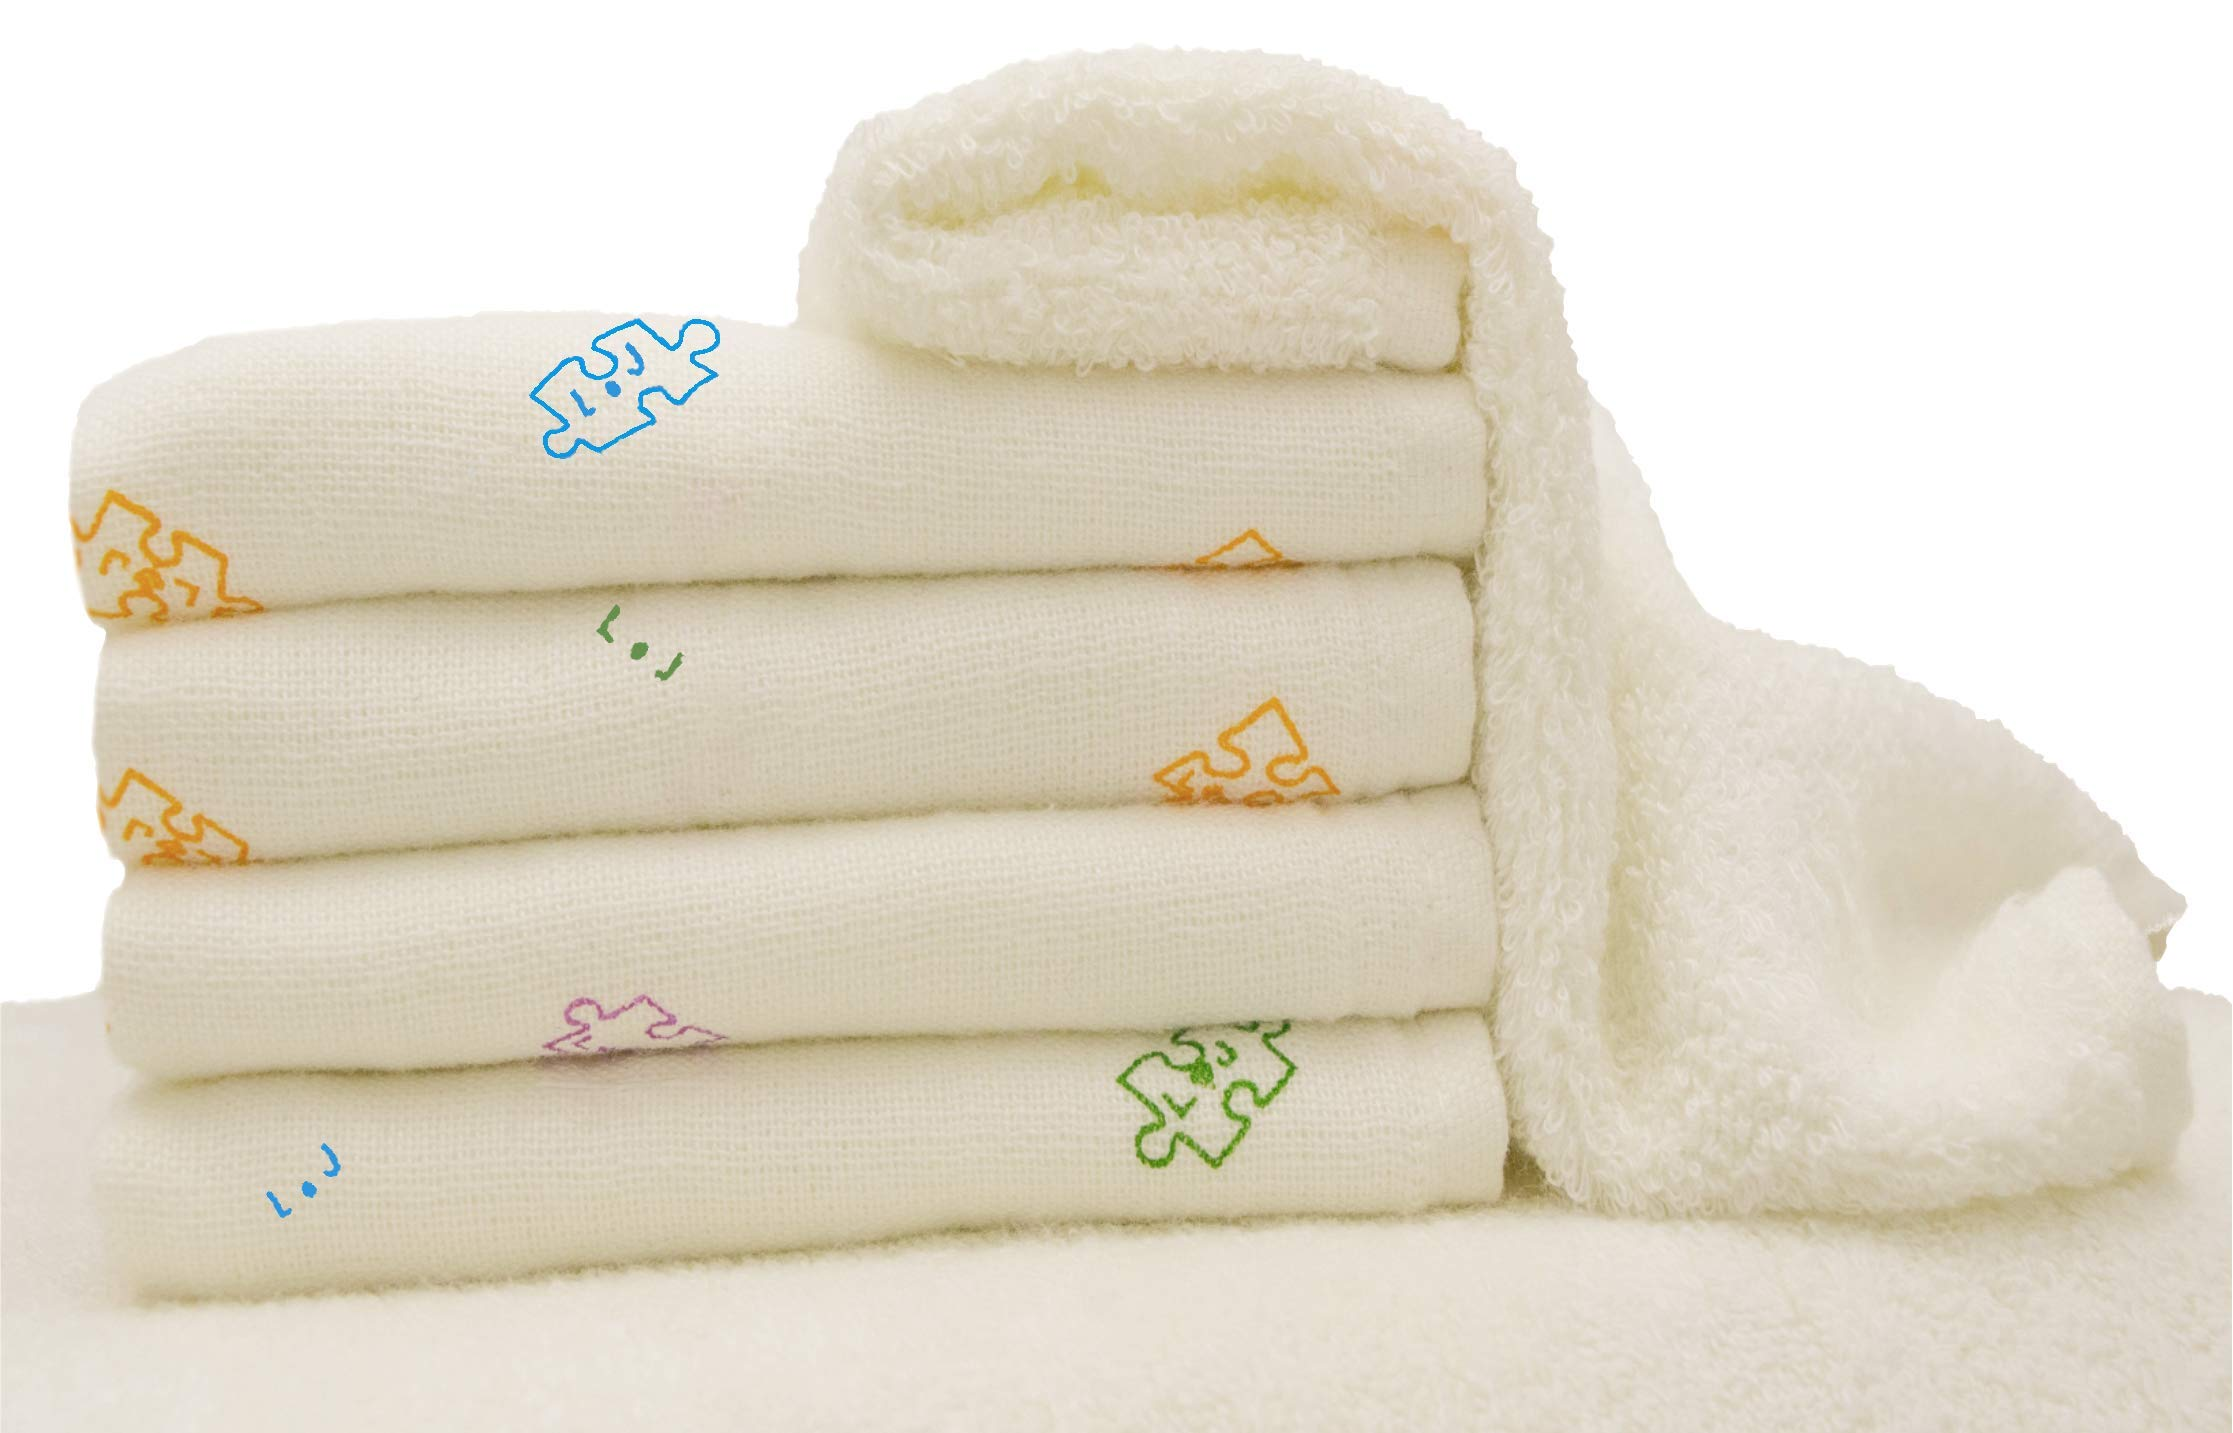 Baby Washcloths | Soft Organic Dual Sided Bamboo Mini Towels | Specialist Recommended | Gentle, Versatile, Perfect for Yours & Babies Delicate Skin | Great Registry Gift | 5 Pack 10'' X 10'' Bubbawarez by Bubbawarez